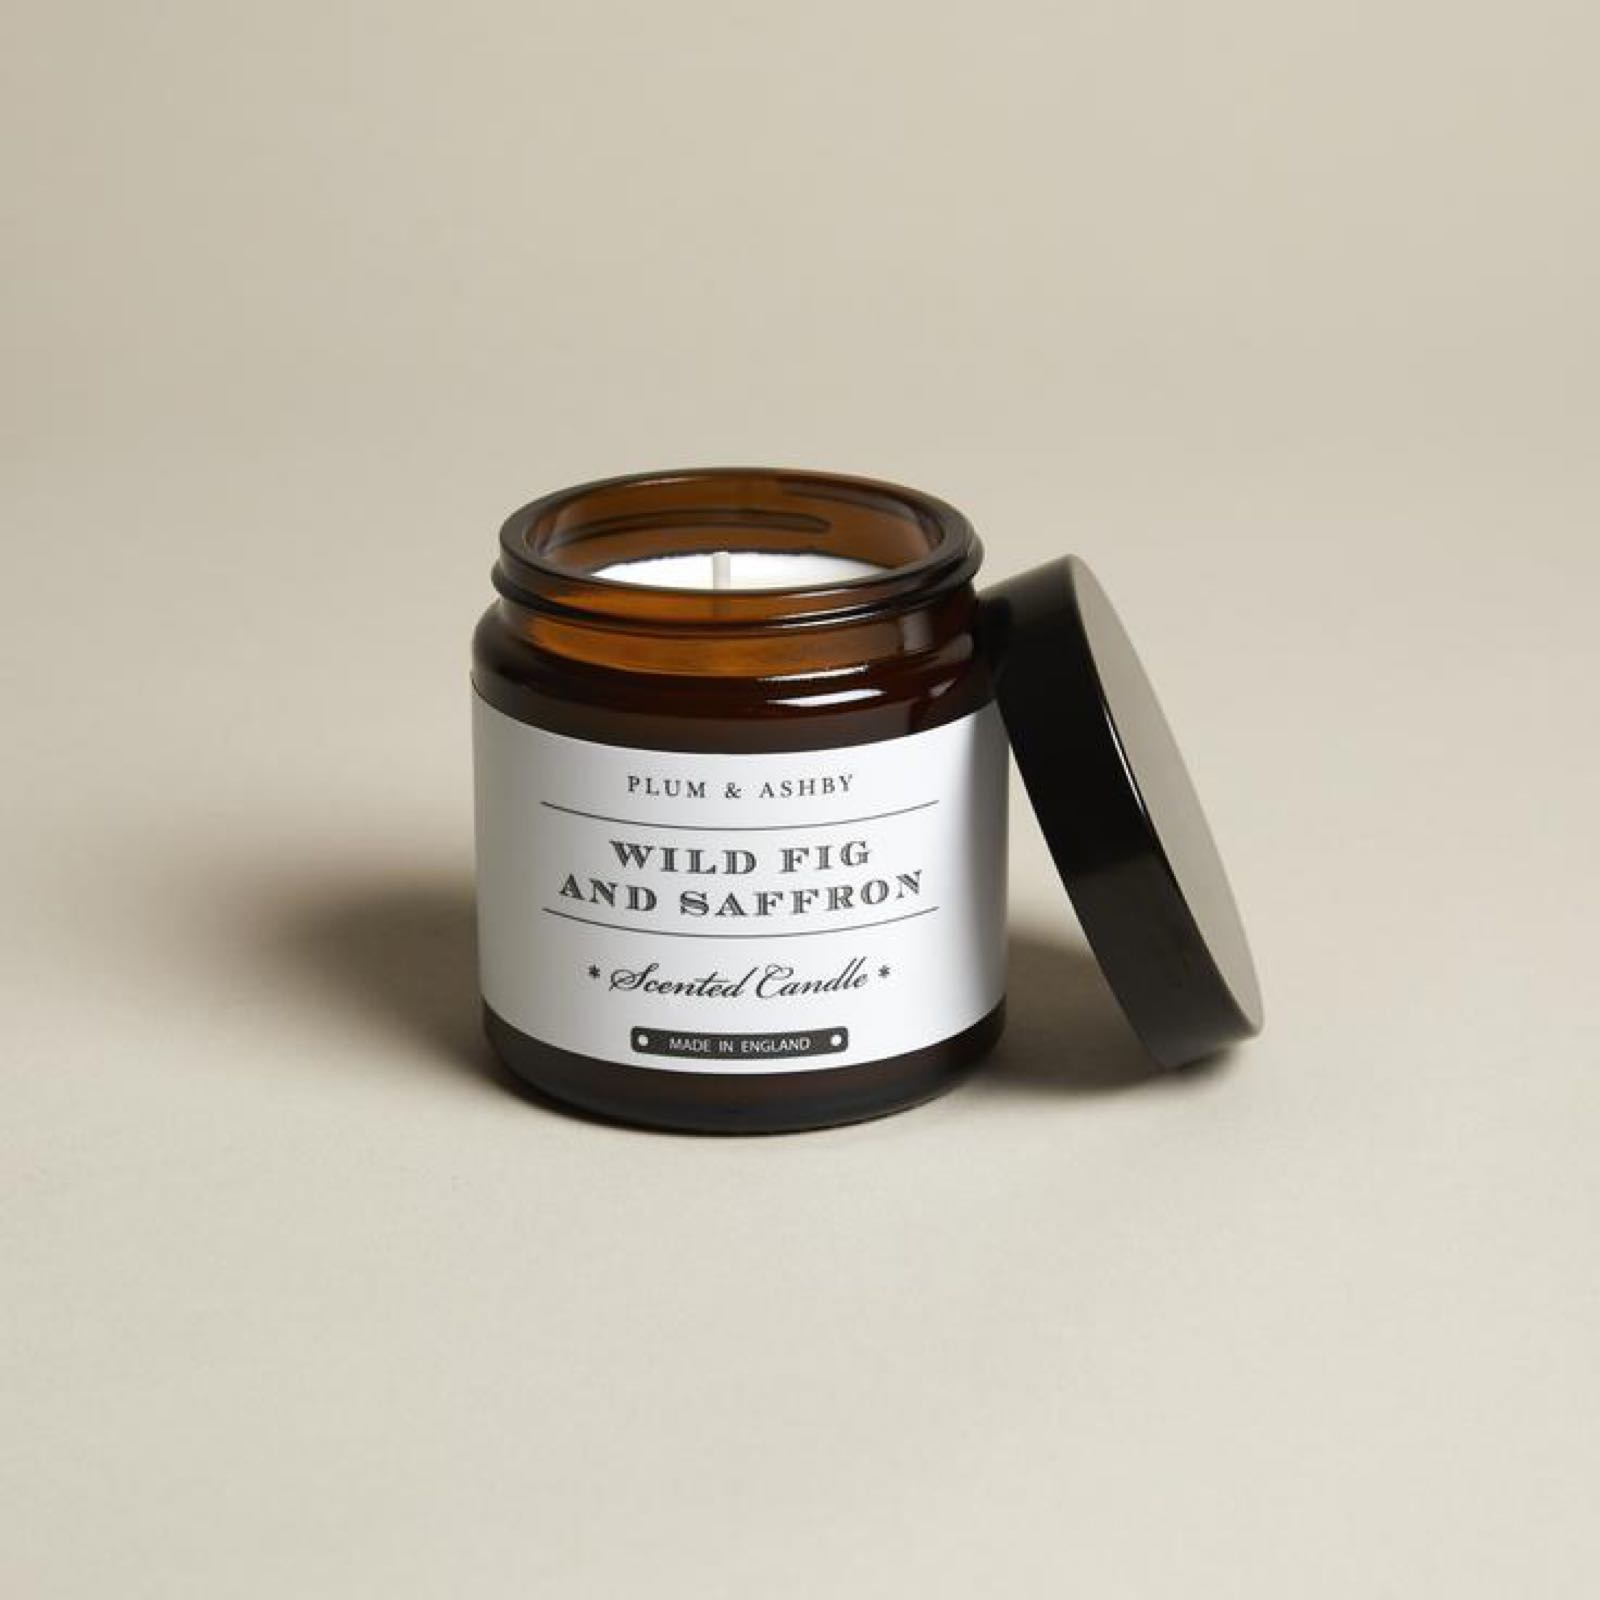 Plum & Ashby Wild Fig & Samphire Fragranced Candle in a Jar made with 100% natural plant wax offers 20 hours Burn time.